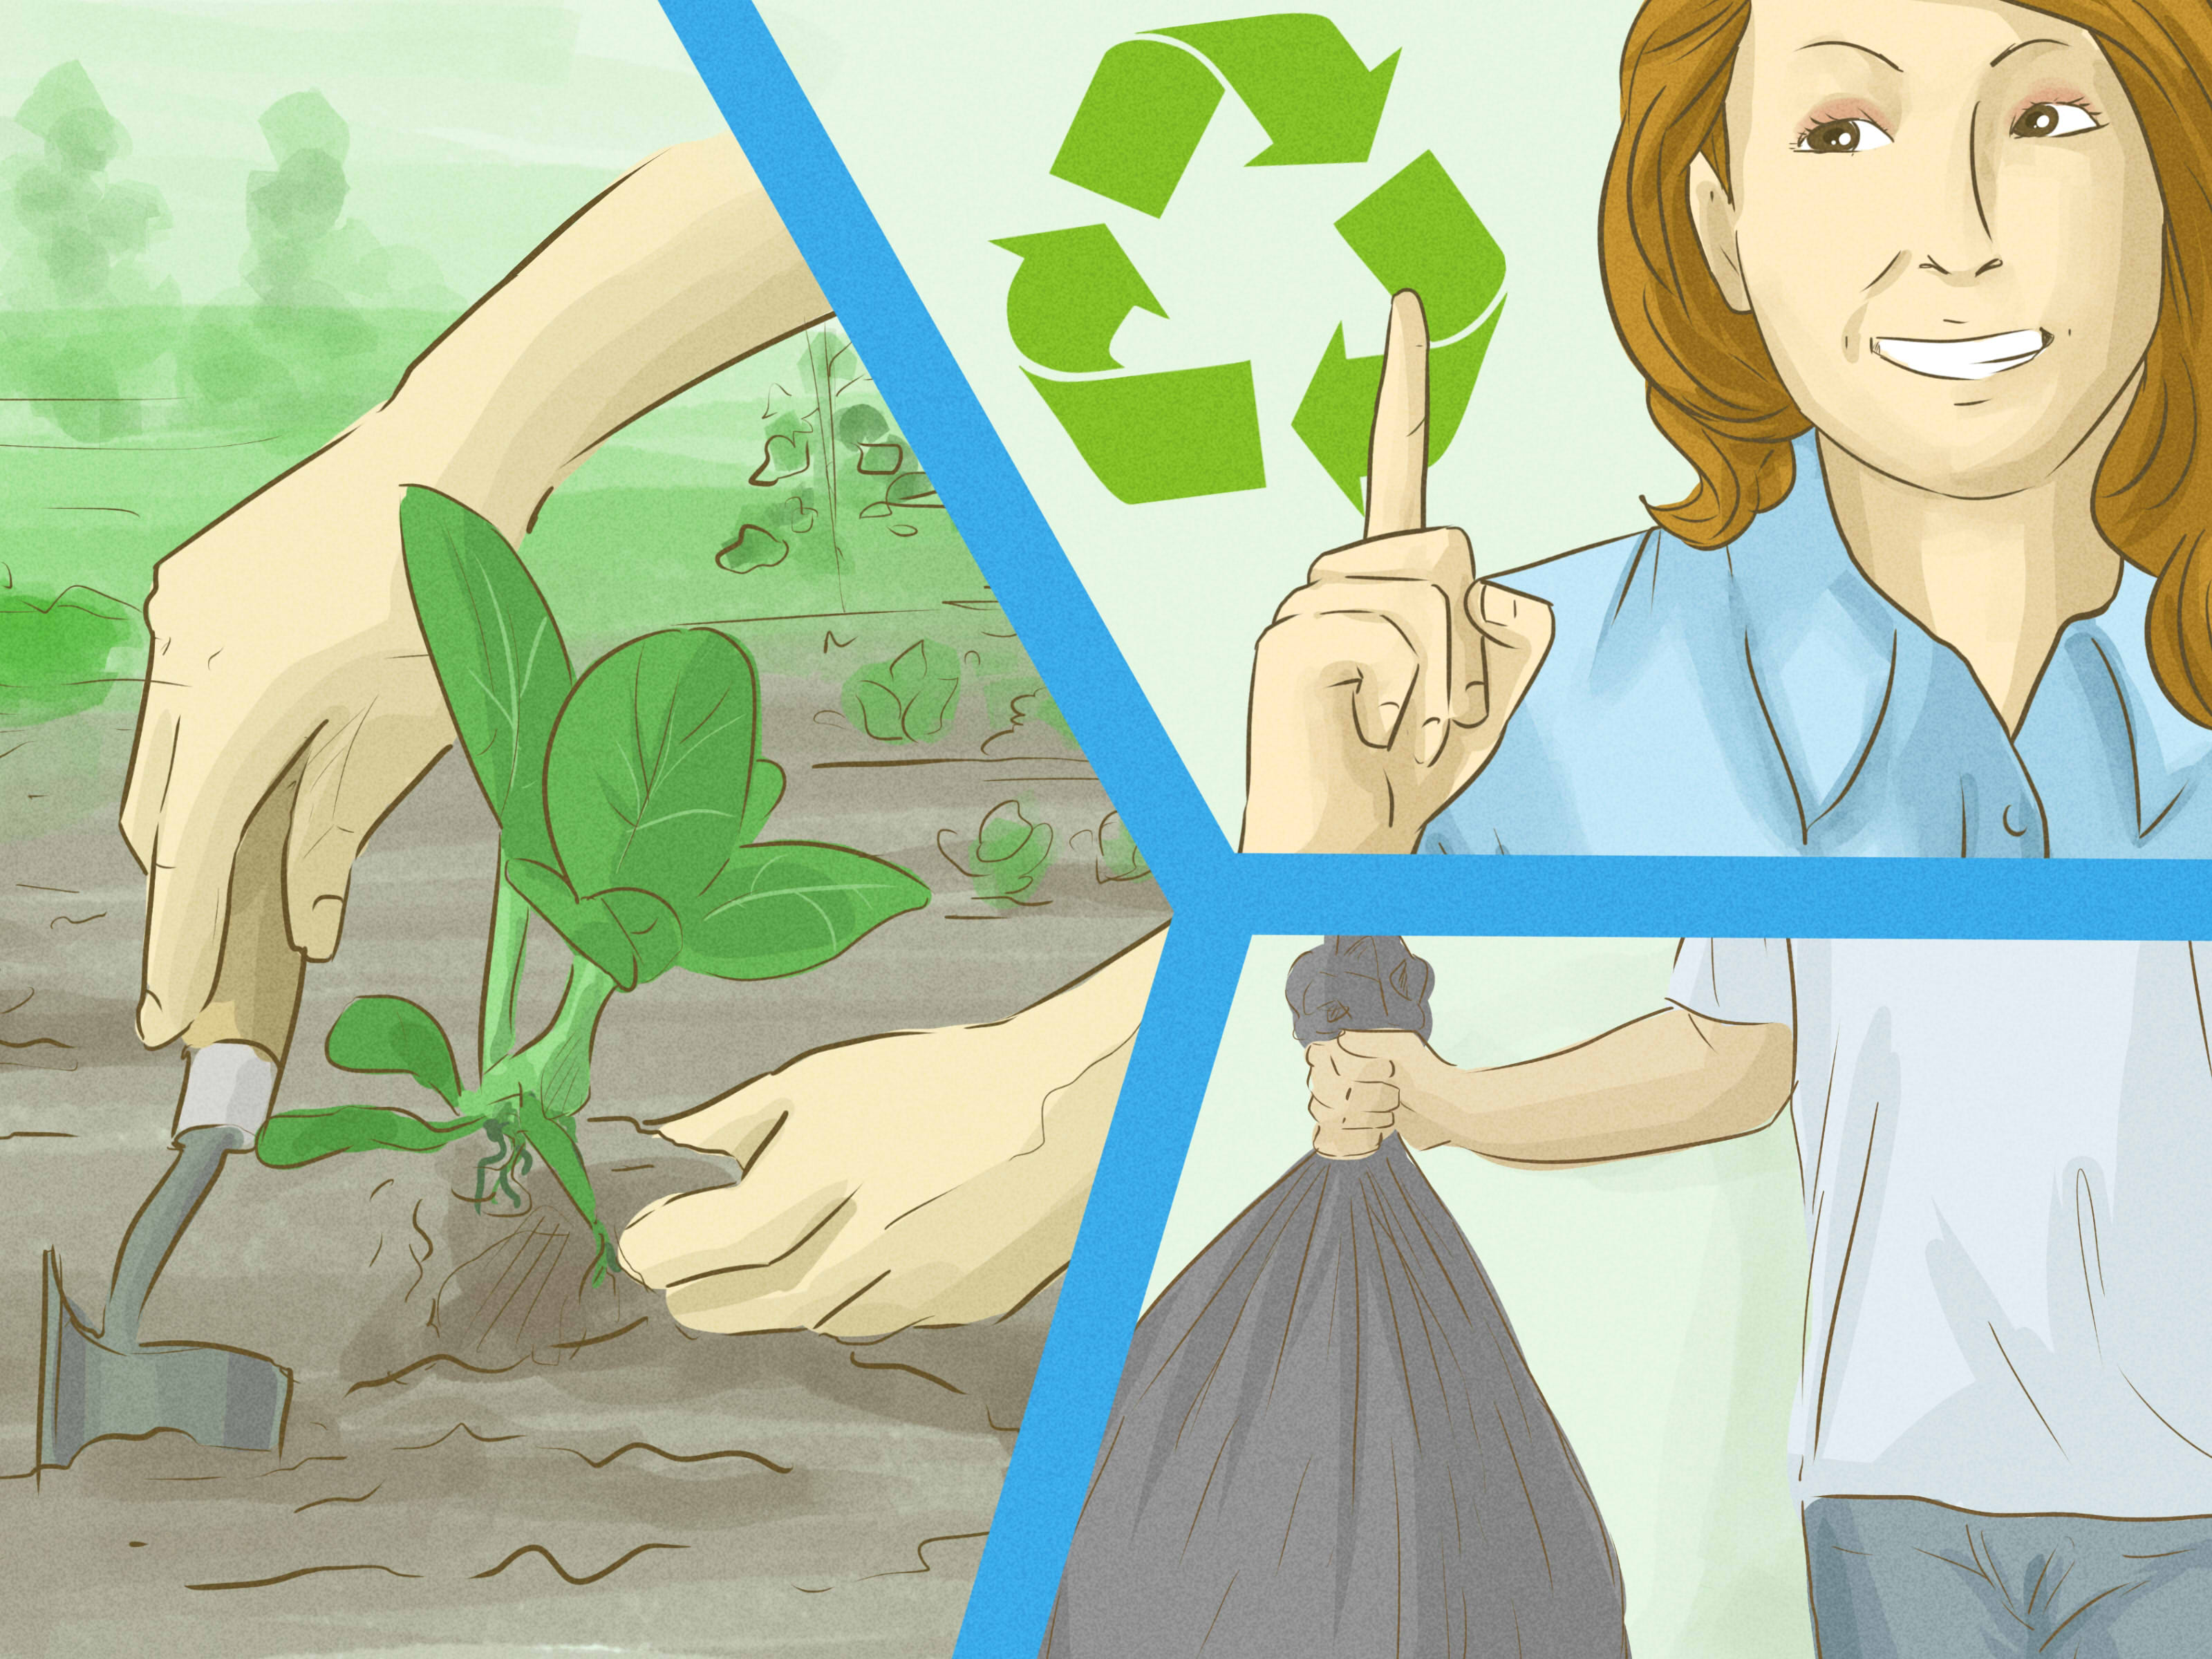 How To Help Save The Environment With Pictures